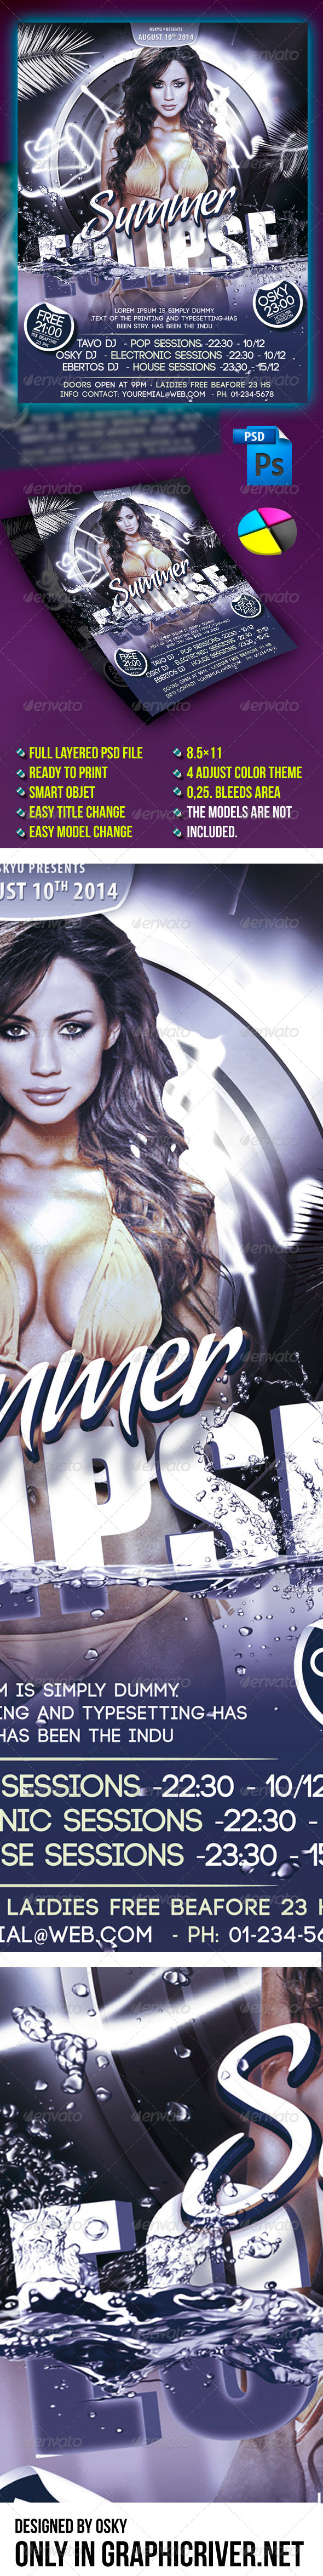 Summer Eclipse Flyer - Clubs & Parties Events